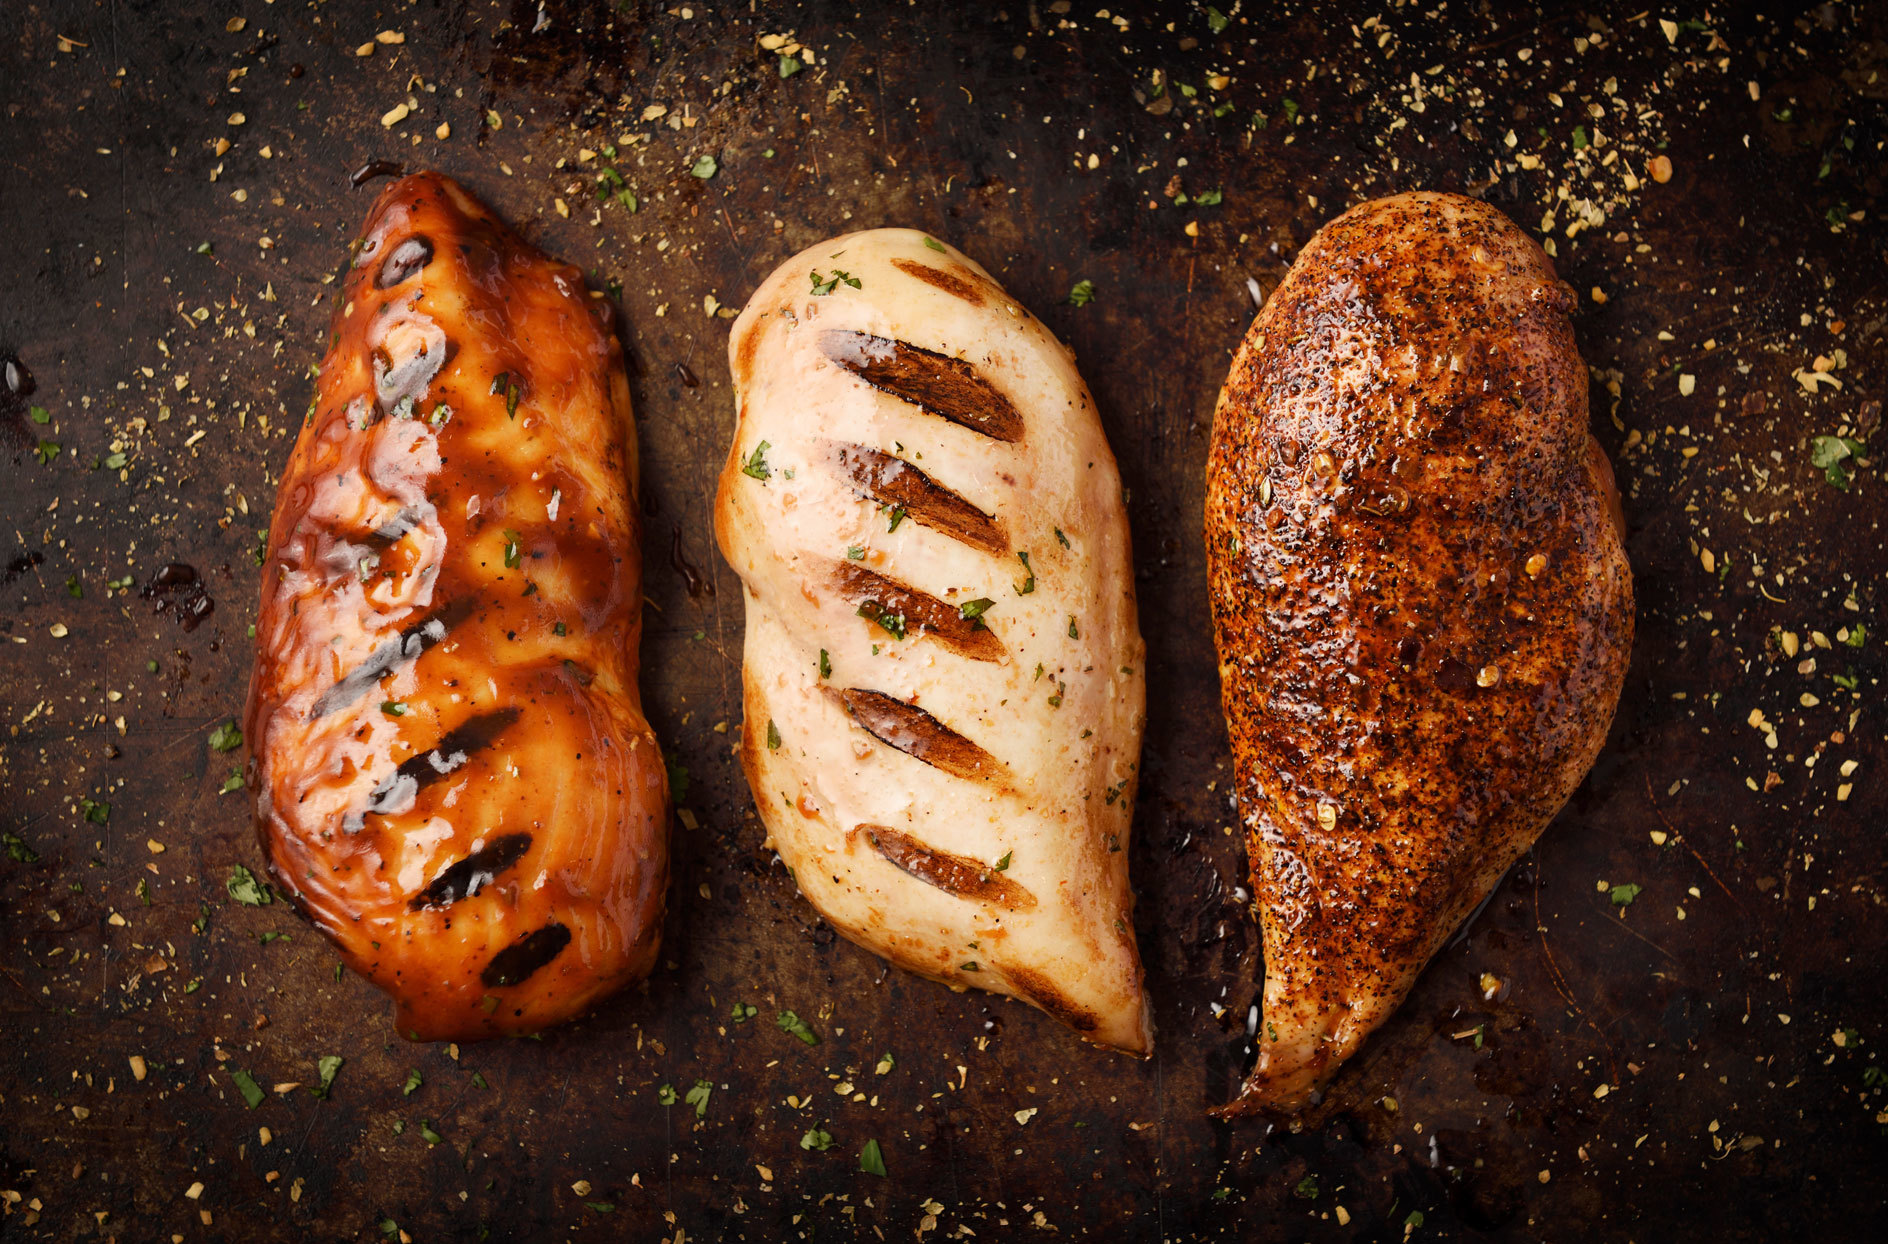 3 chicken breasts, all cooked differently